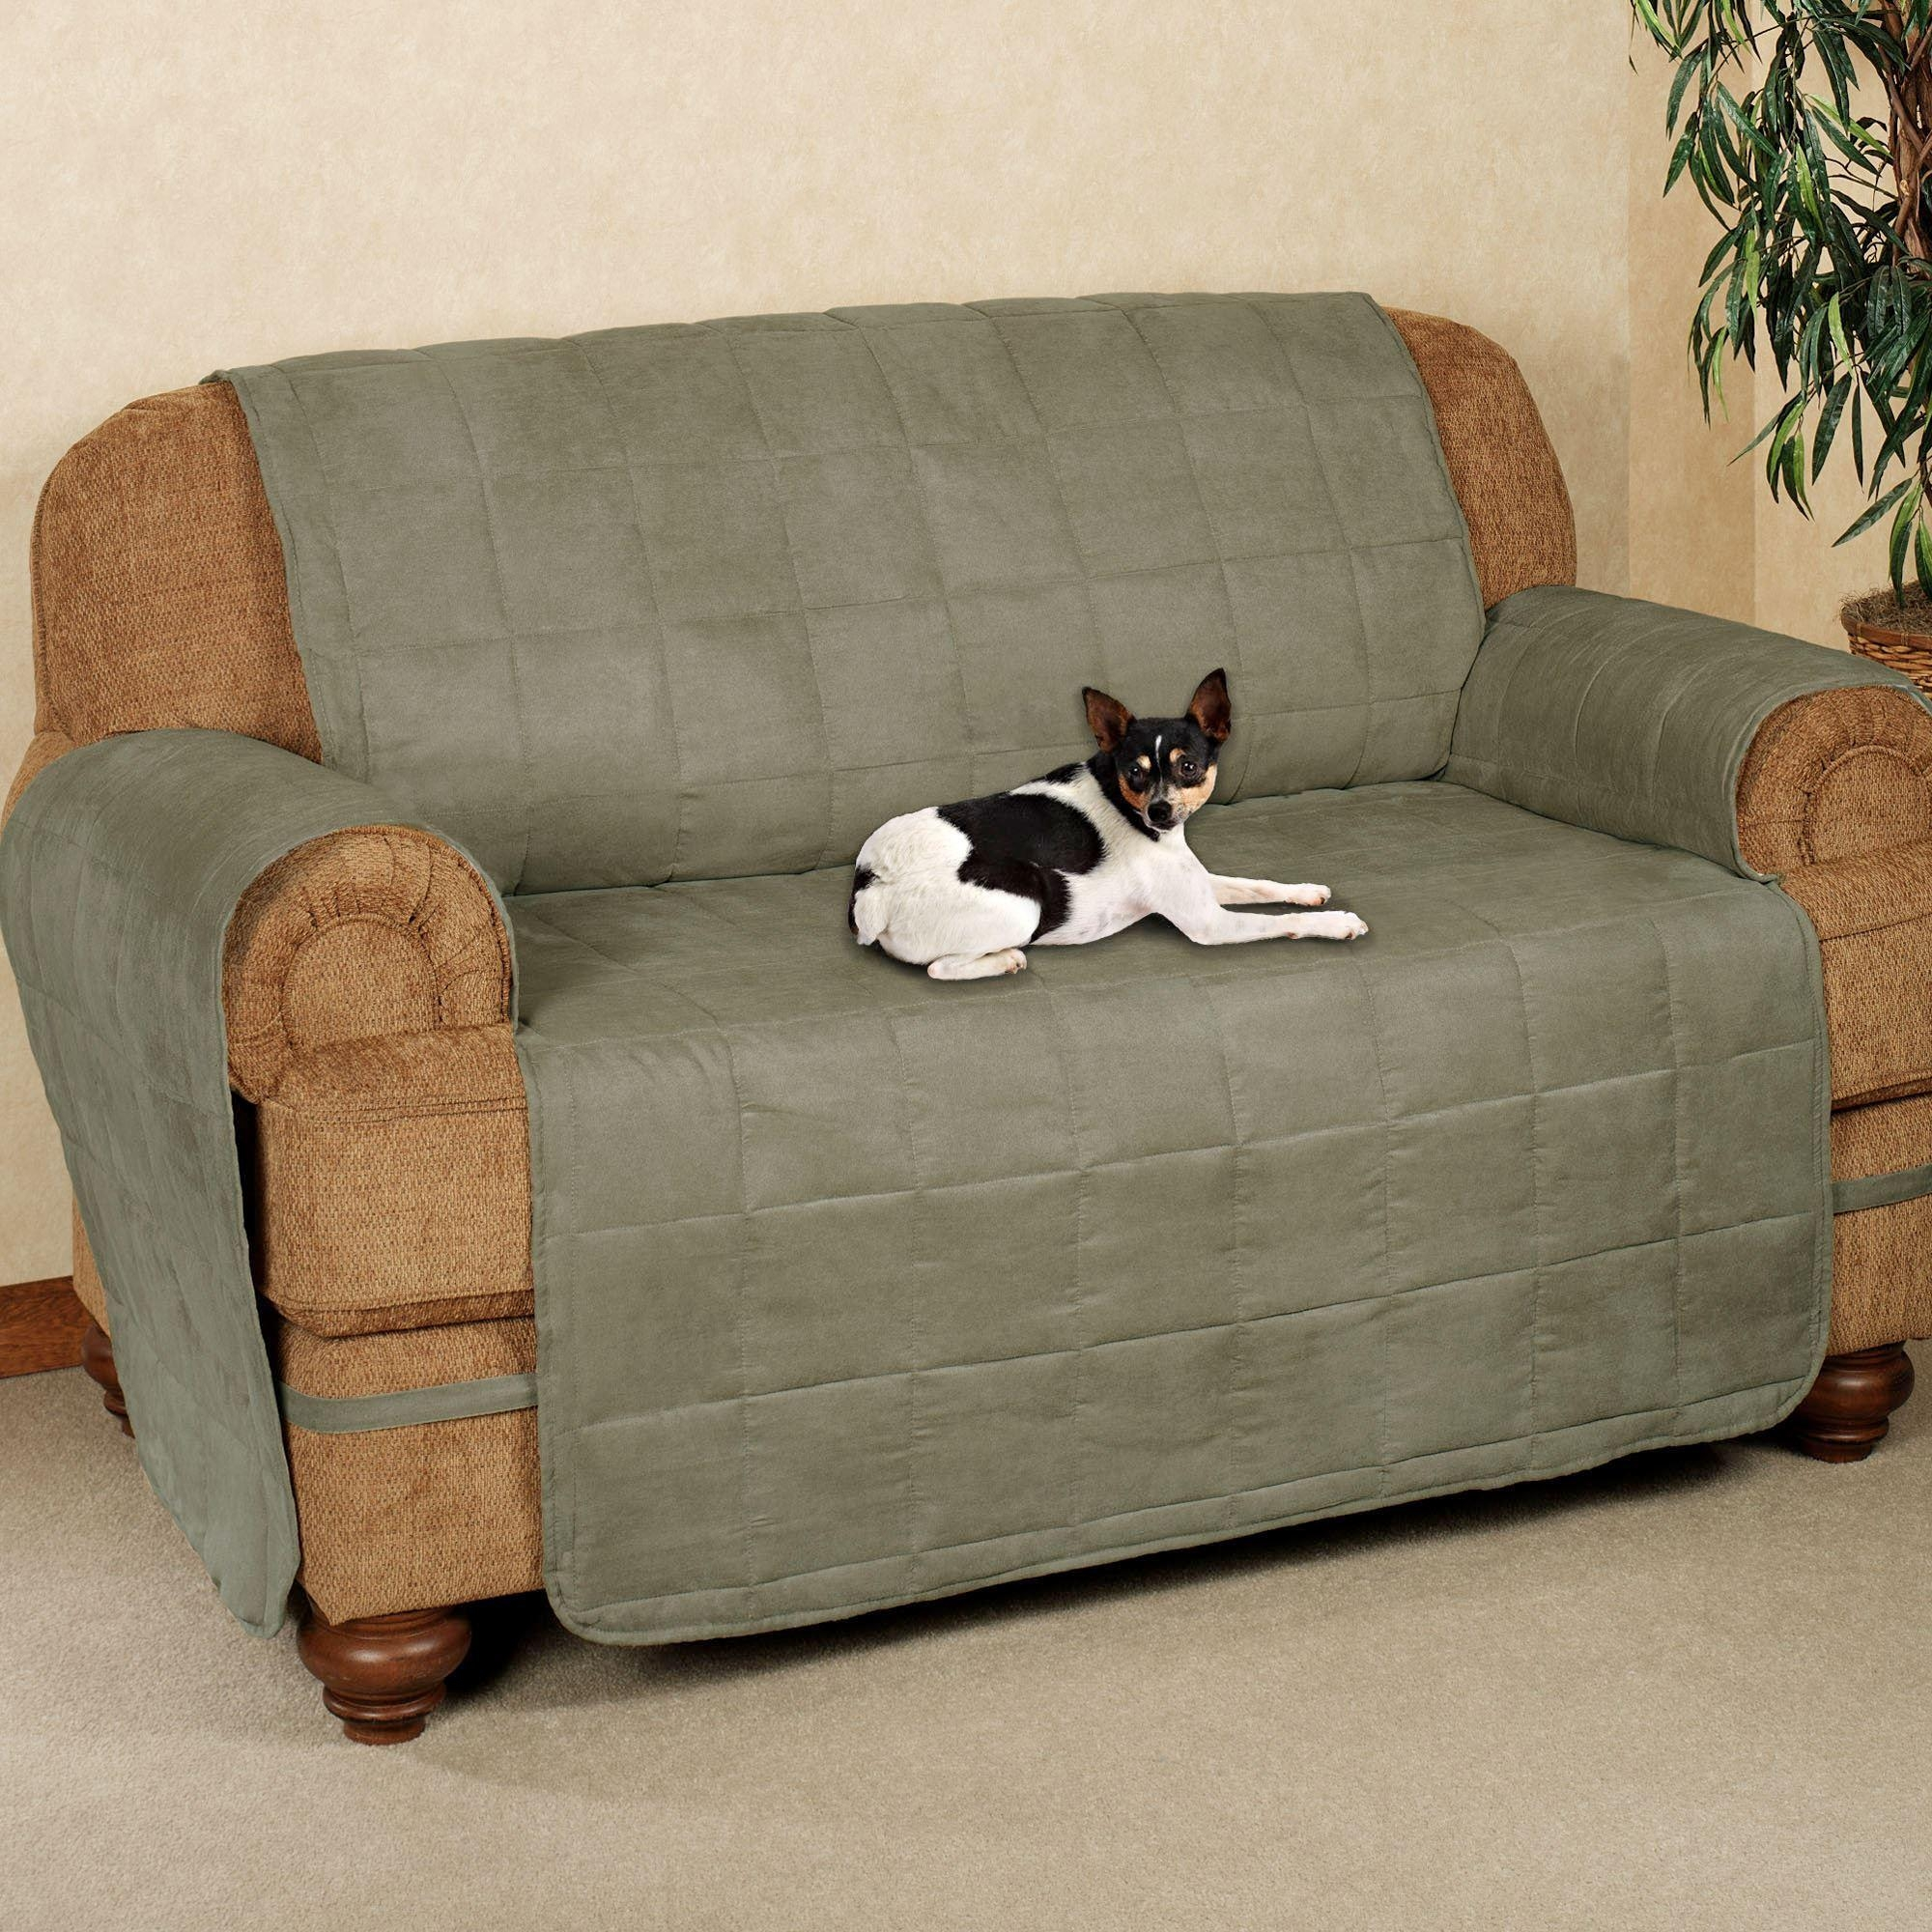 Ultimate Pet Furniture Protectors With Straps Regarding Covers For Sofas And Chairs (View 14 of 20)